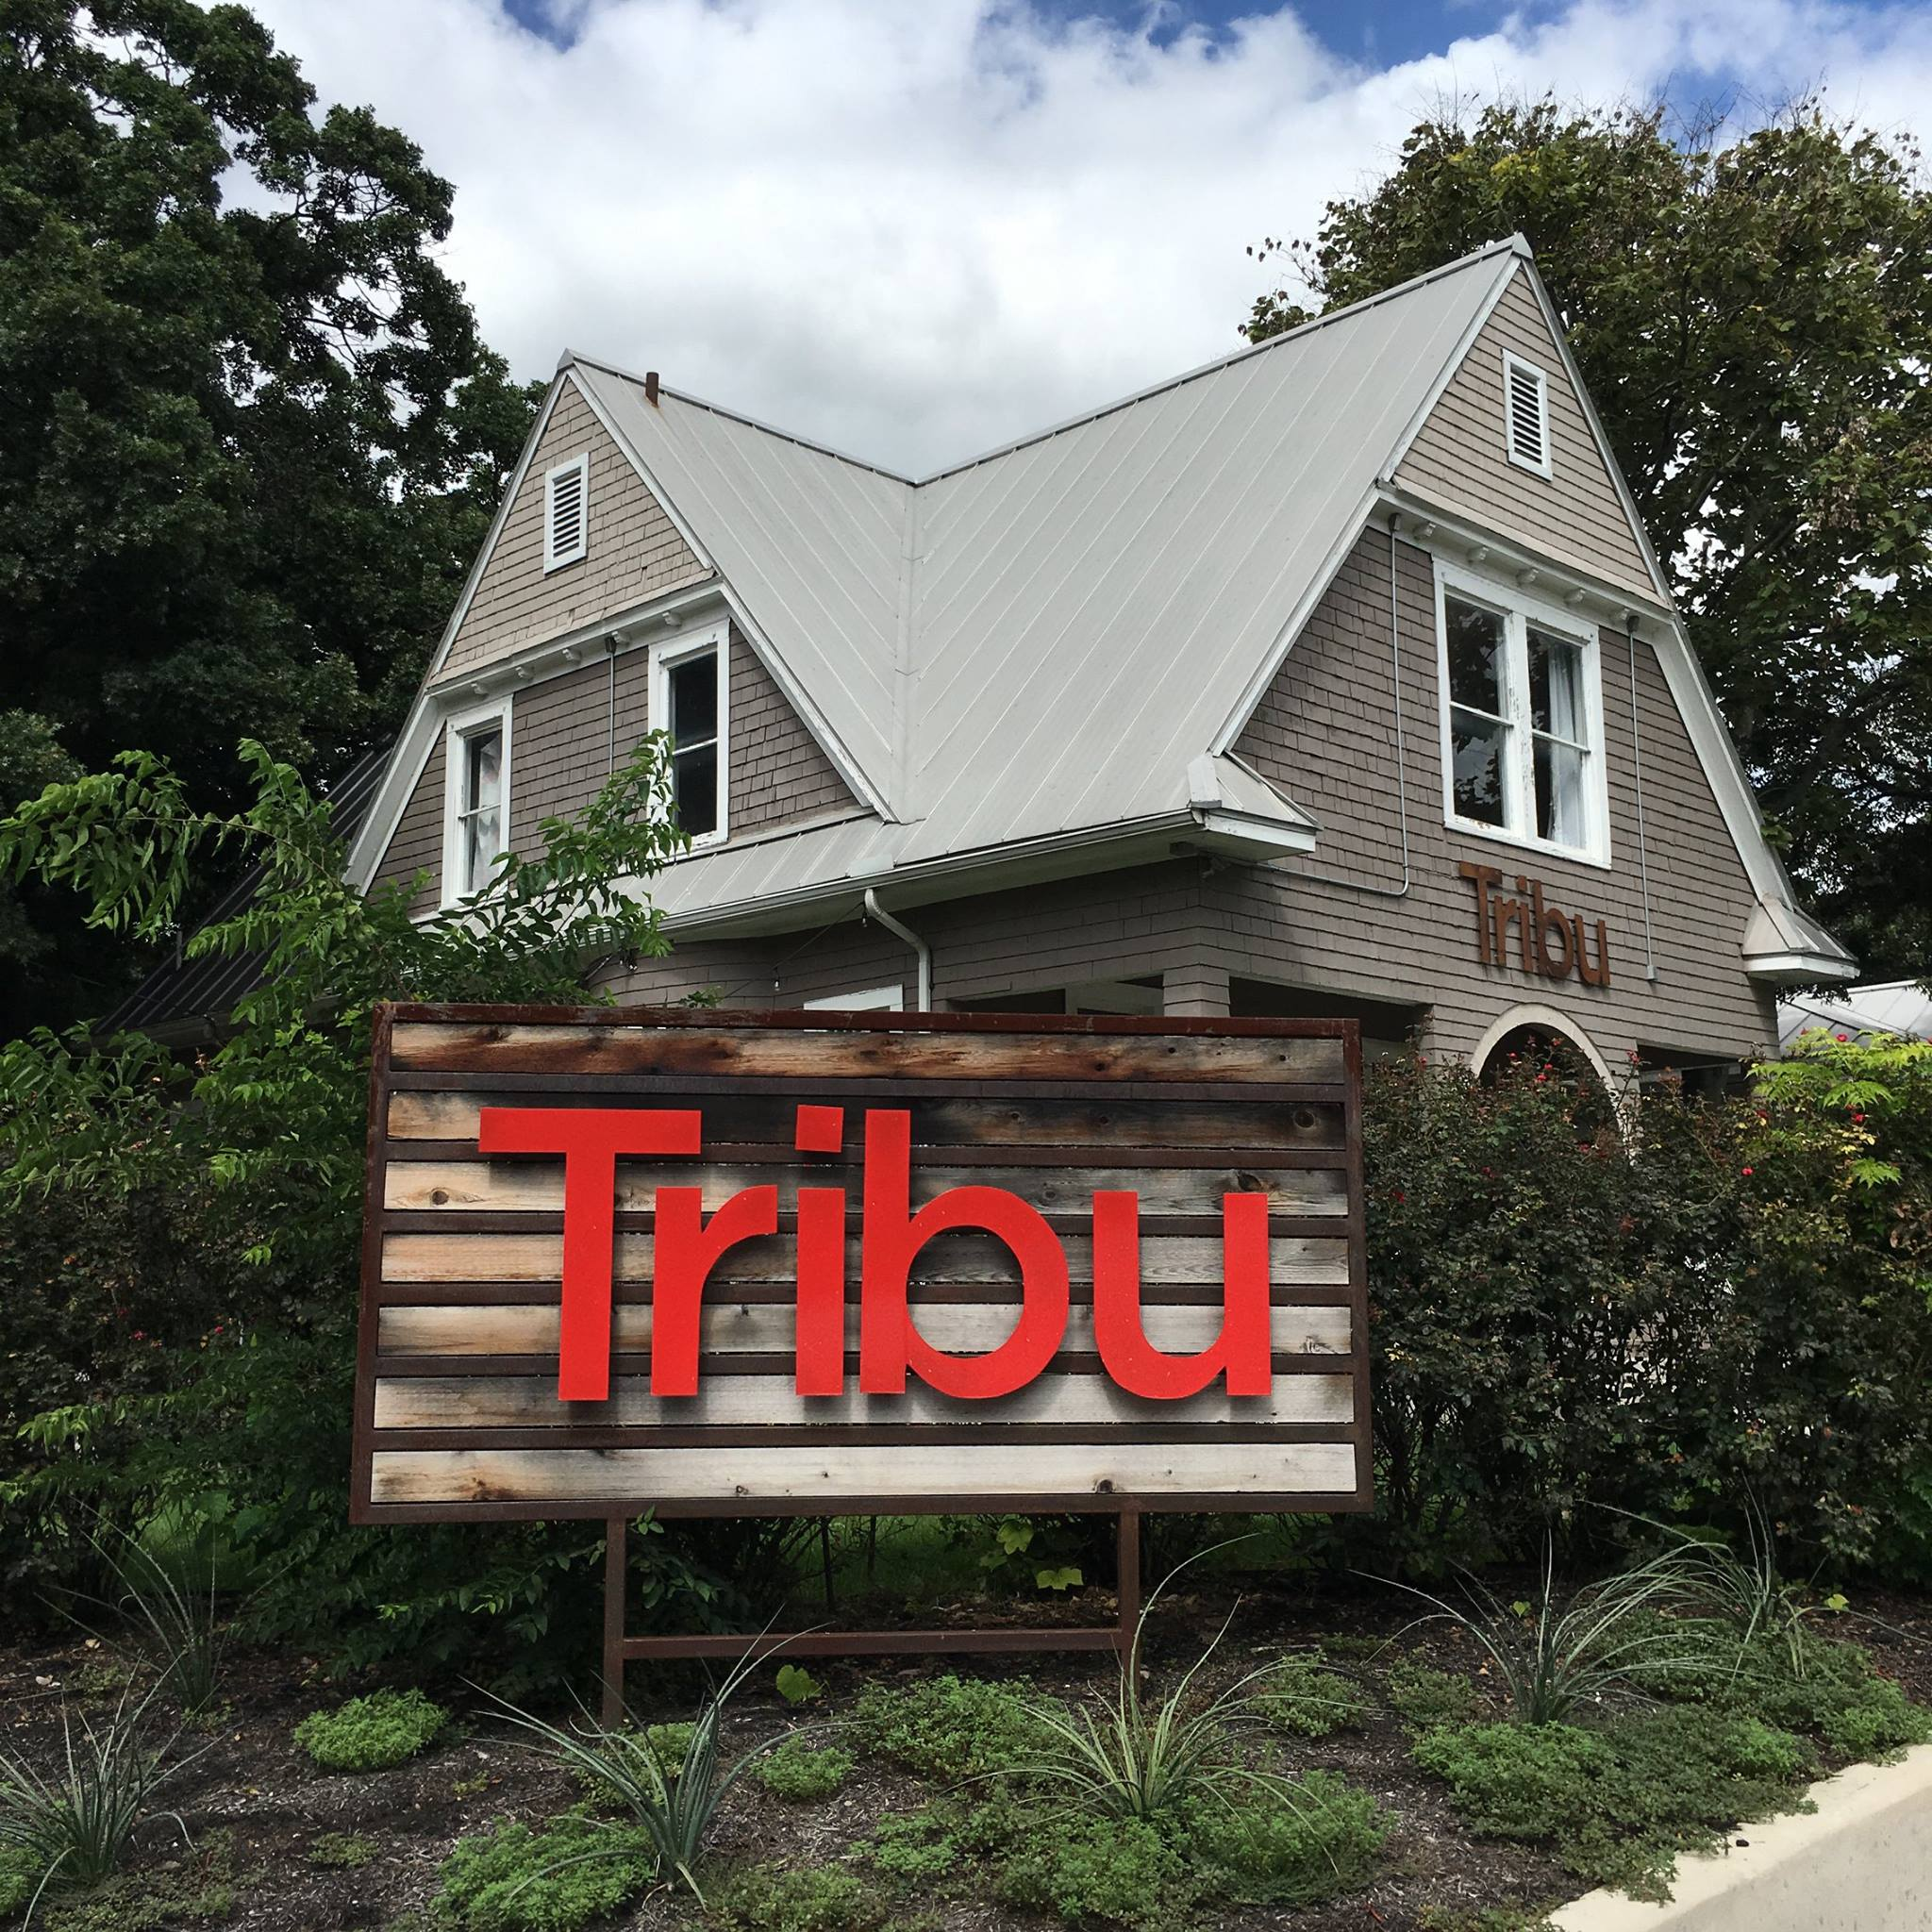 Tribu San Antonio Texas digital marketing advertising graphic design content strategy social media agency firm historic home downtown The Pearl 801 Quincy St the tribe home red